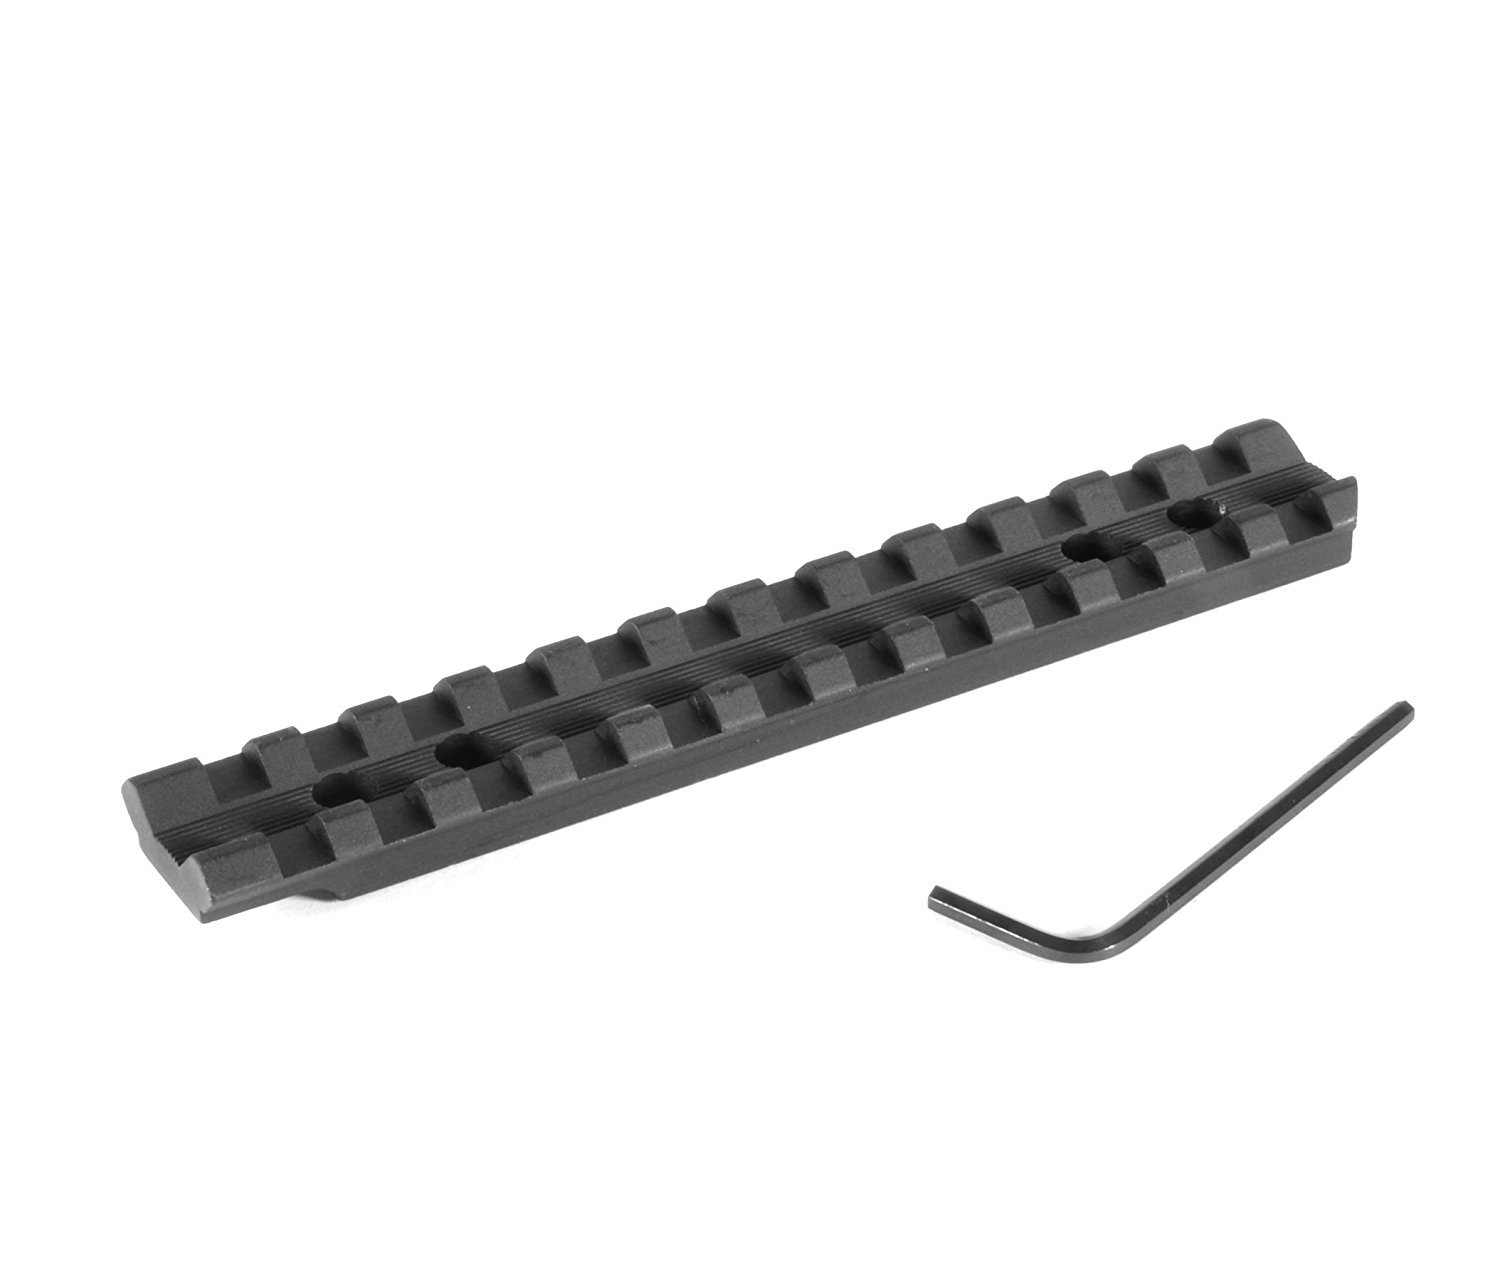 Marlin 1895 336 444 Camp Carbine 9mm Carbine45 Pin Model Parts Diagram On Pinterest Picatinny Rail Scope Mount 0 Moa Sports Outdoors